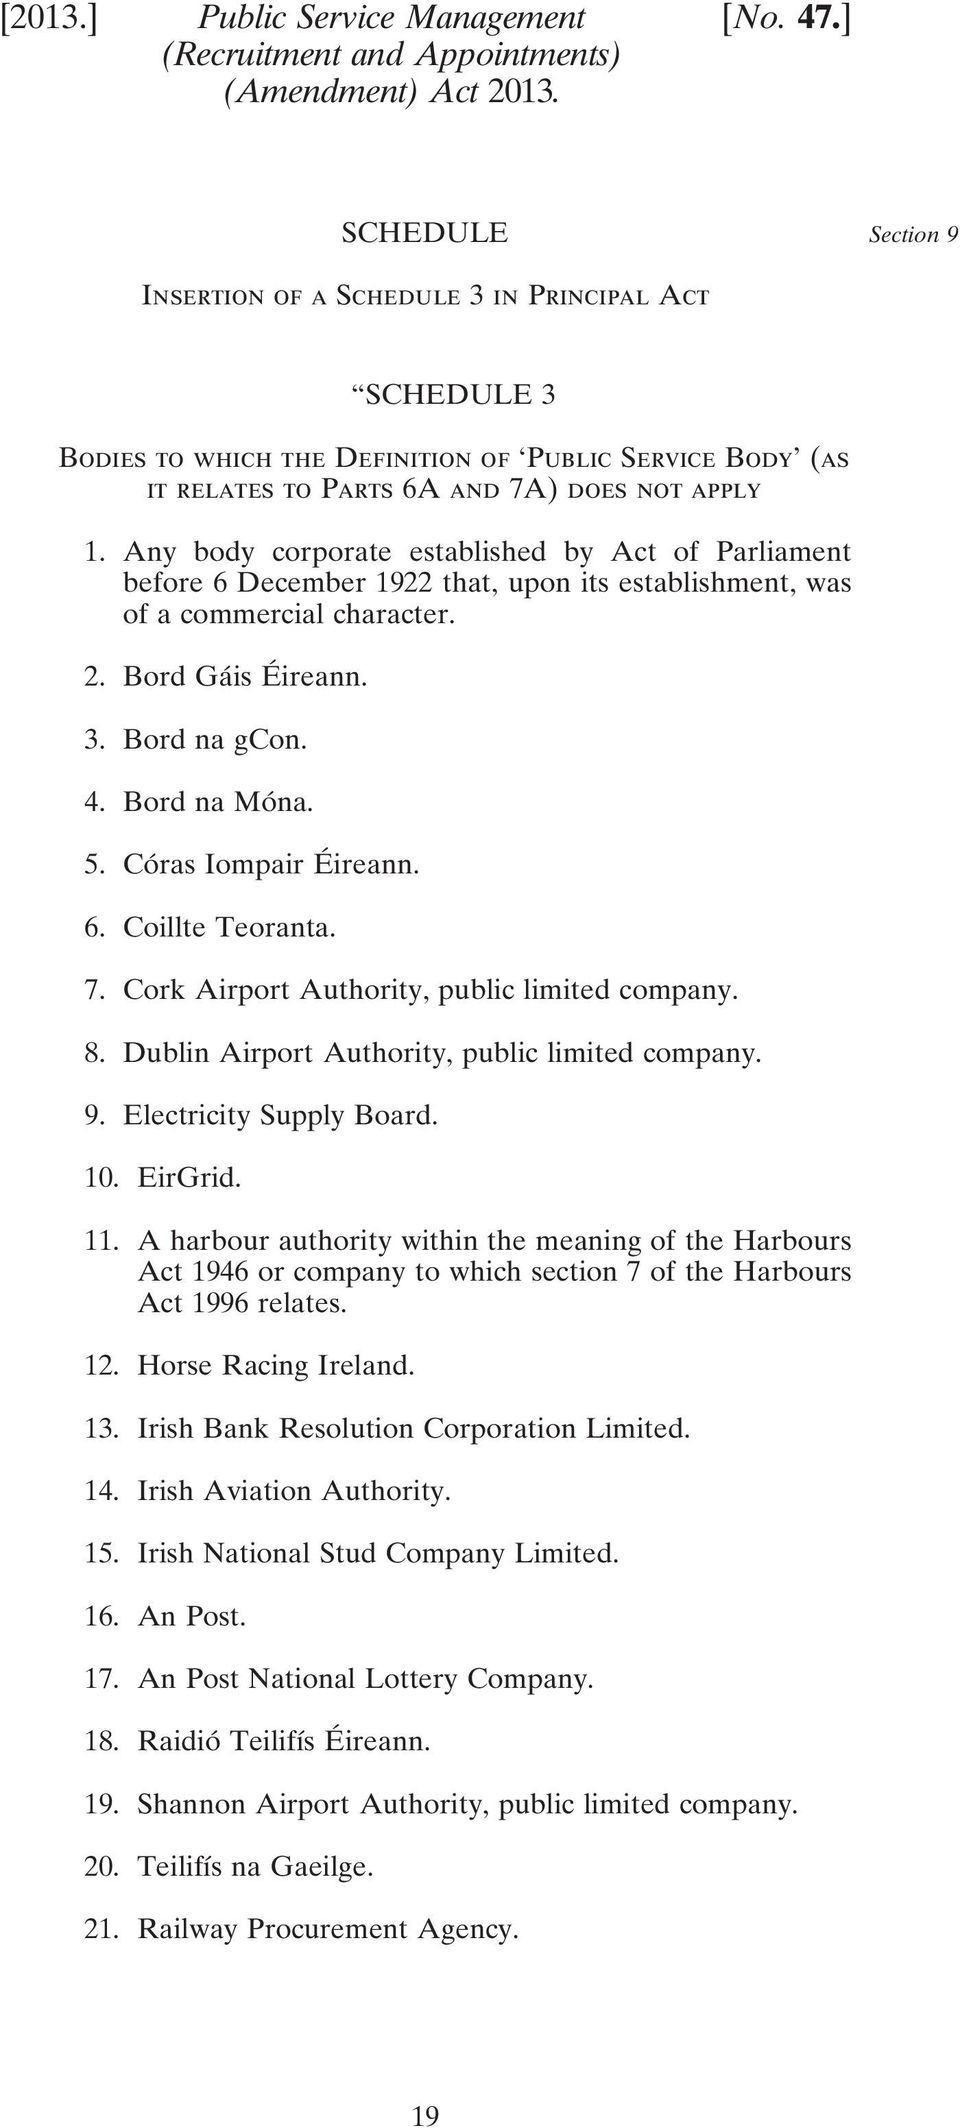 Any body corporate established by Act of Parliament before 6 December 1922 that, upon its establishment, was of a commercial character. 2. Bord Gáis Éireann. 3. Bord na gcon. 4. Bord na Móna. 5.